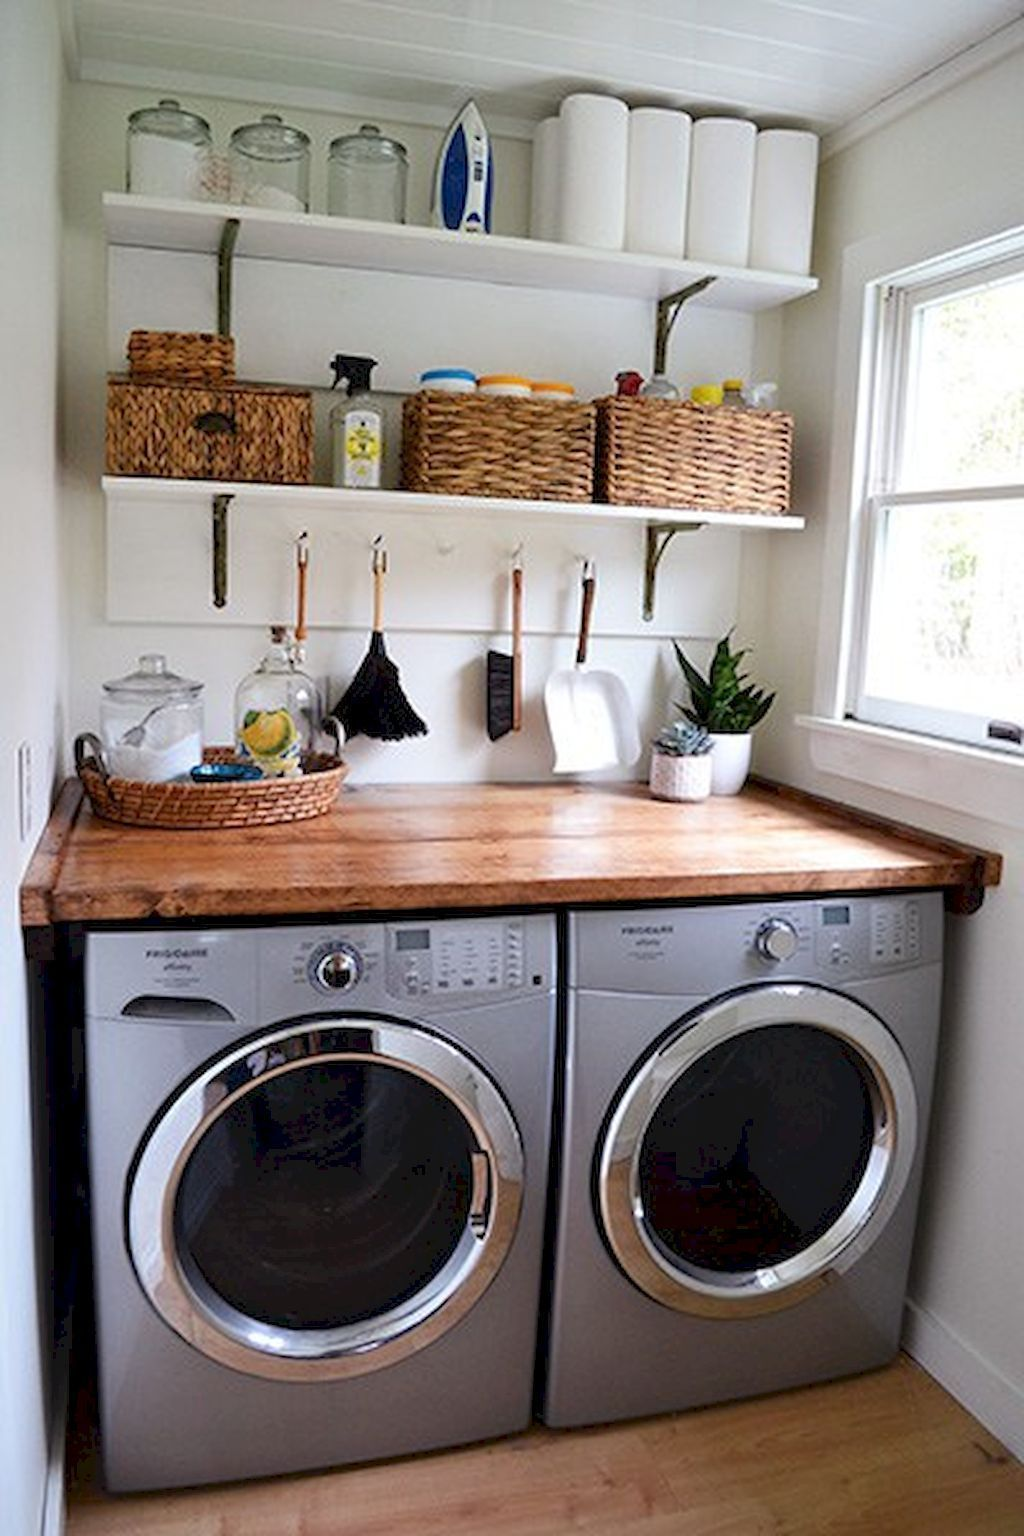 Corner Laundry Shelf 49 Minimalist Laundry Room Ideas Minimalist Decor